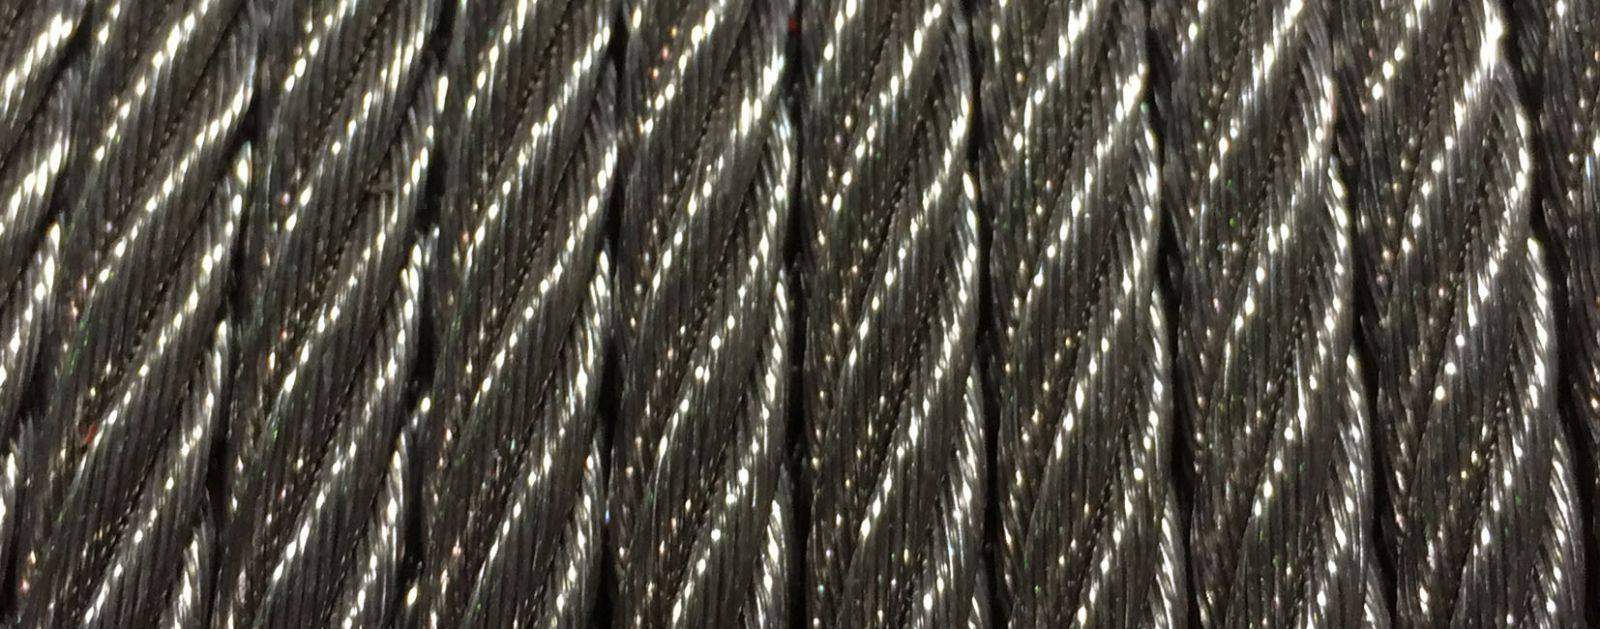 1/2 inch 7x19 Galvanized Aircraft Cable | Wesco Industries